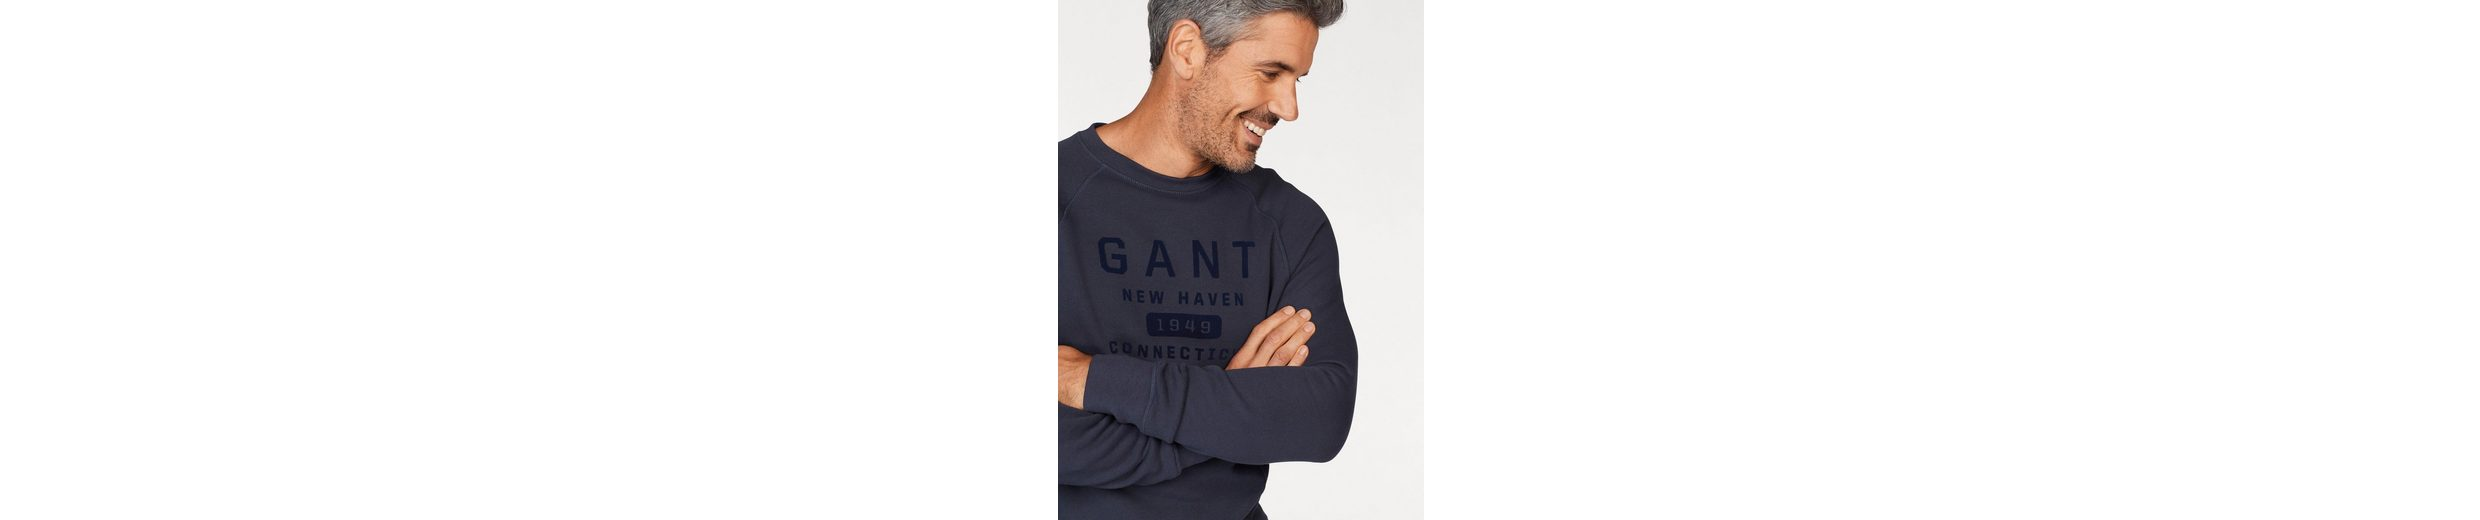 Gant Sweatshirt NEW HEAVEN, mit Flockprint